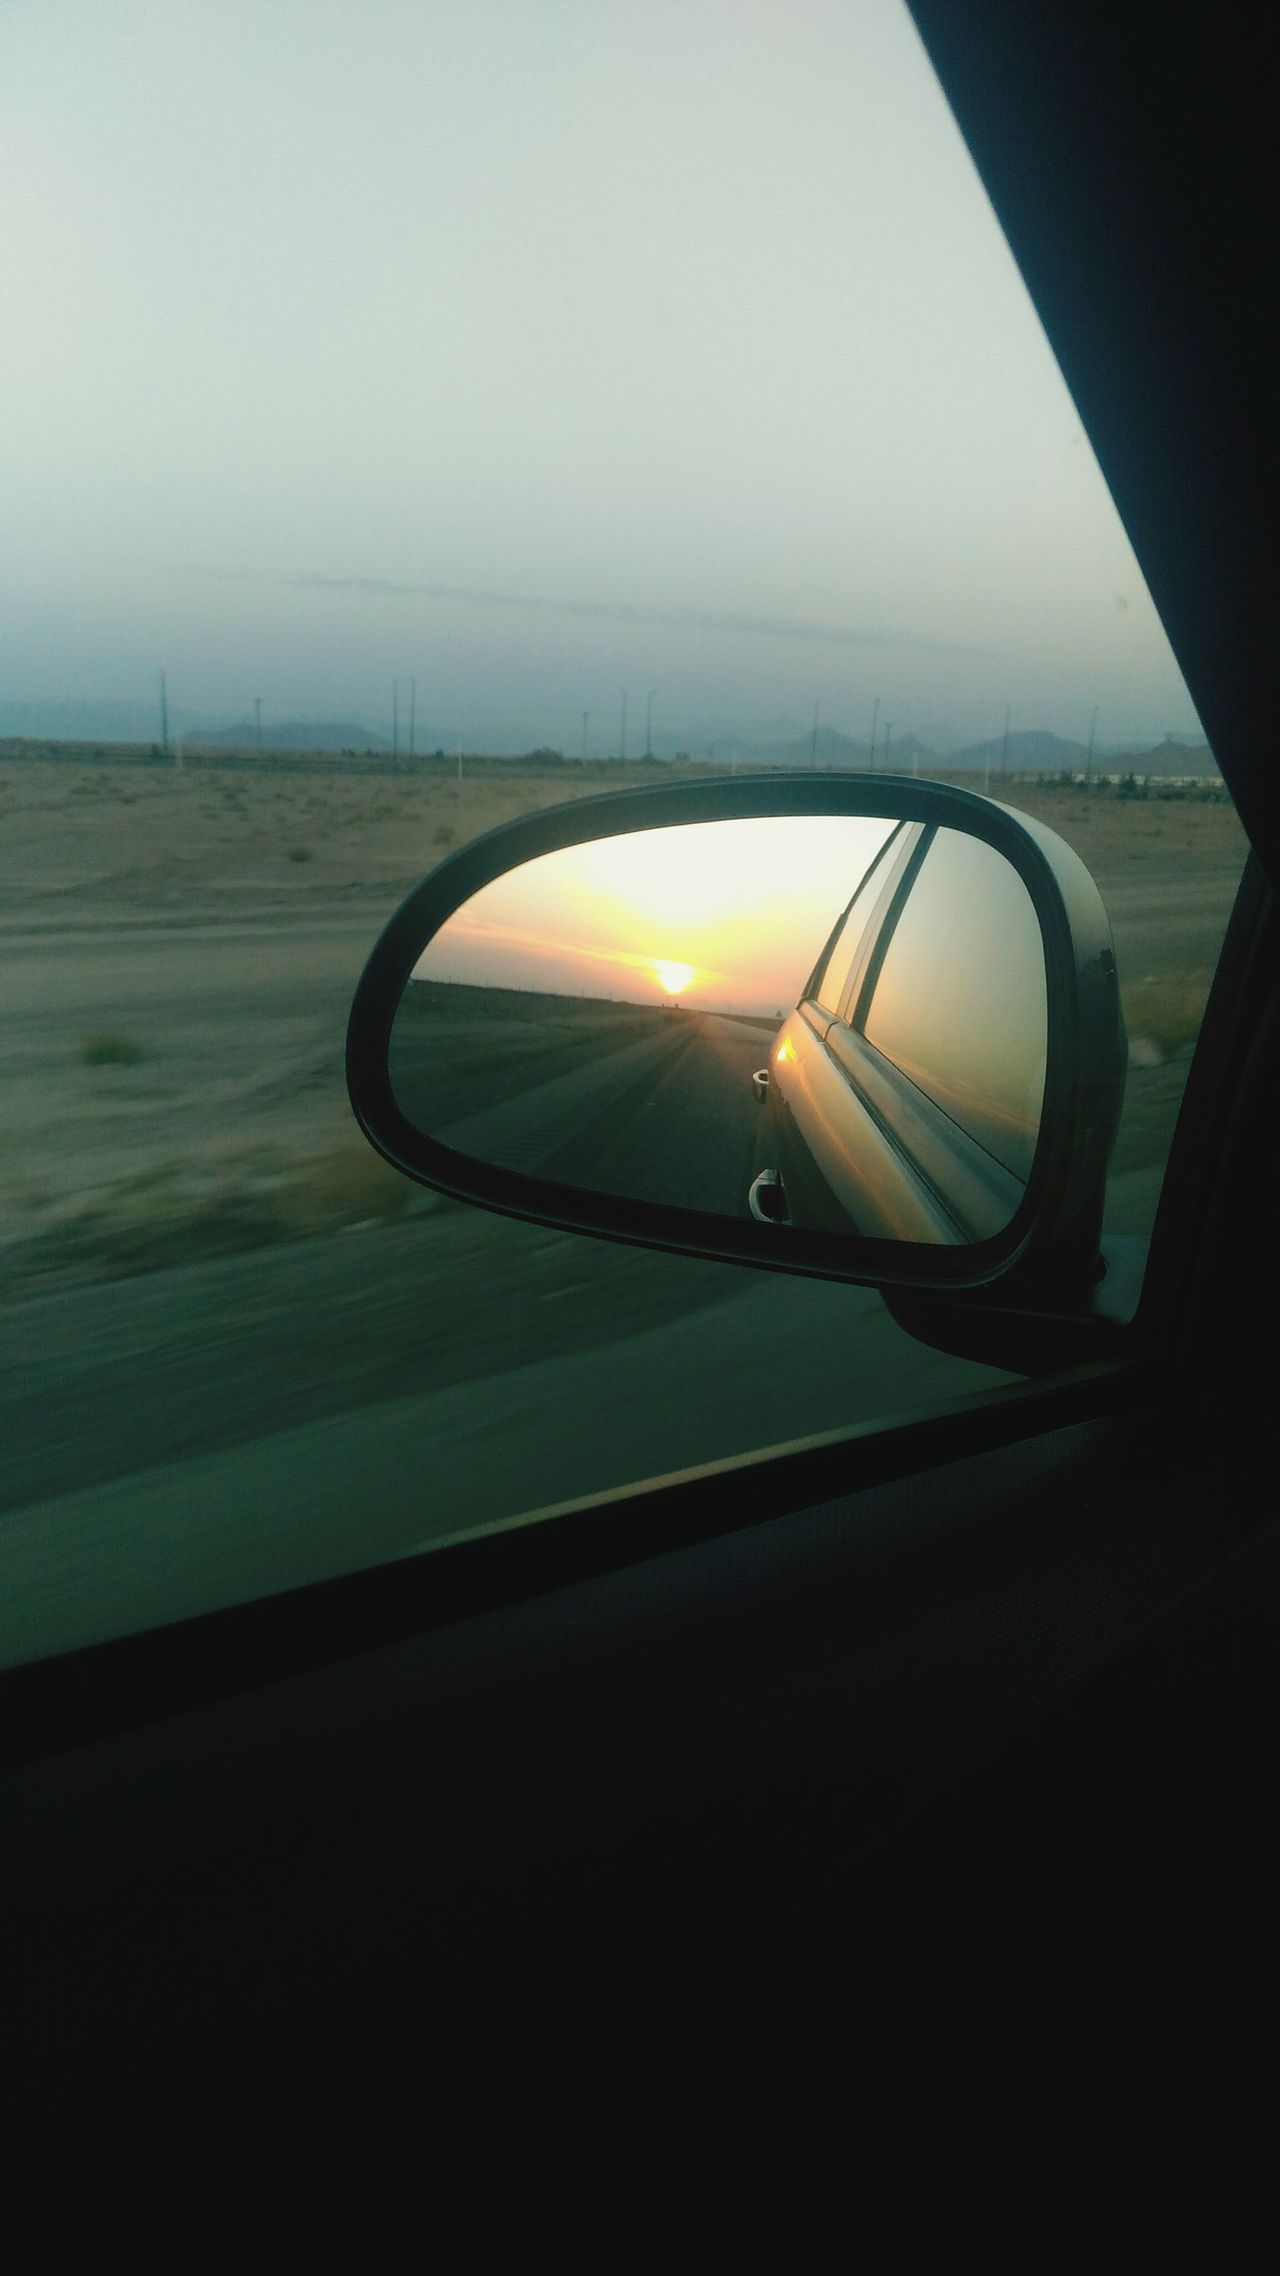 Car Transportation Reflection Sunlight Travel Sunset Mode Of Transport No People Nature Sky Side-view Mirror Outdoors Day Close-up Vehicle Mirror